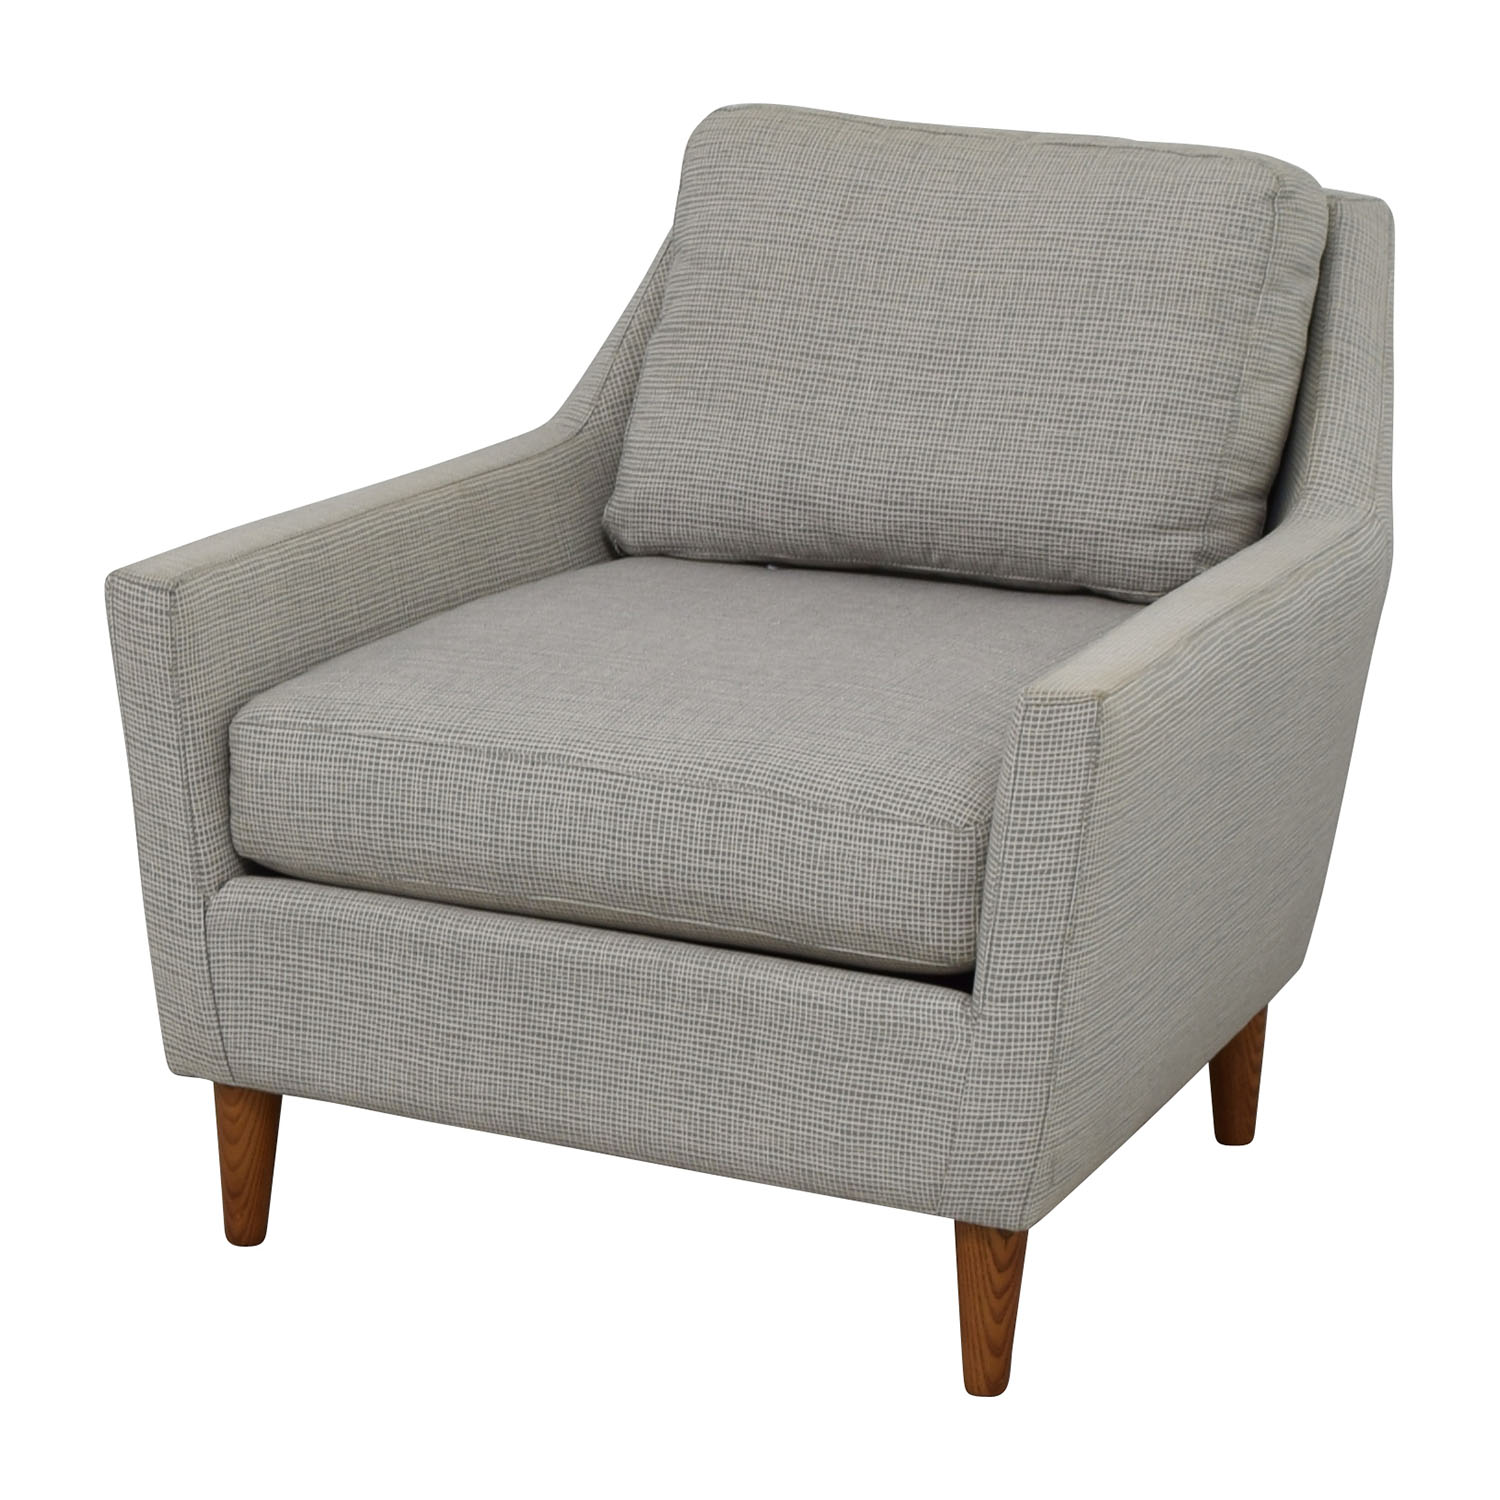 west elm everett chair healthy chairs offices 66 off grey sofa